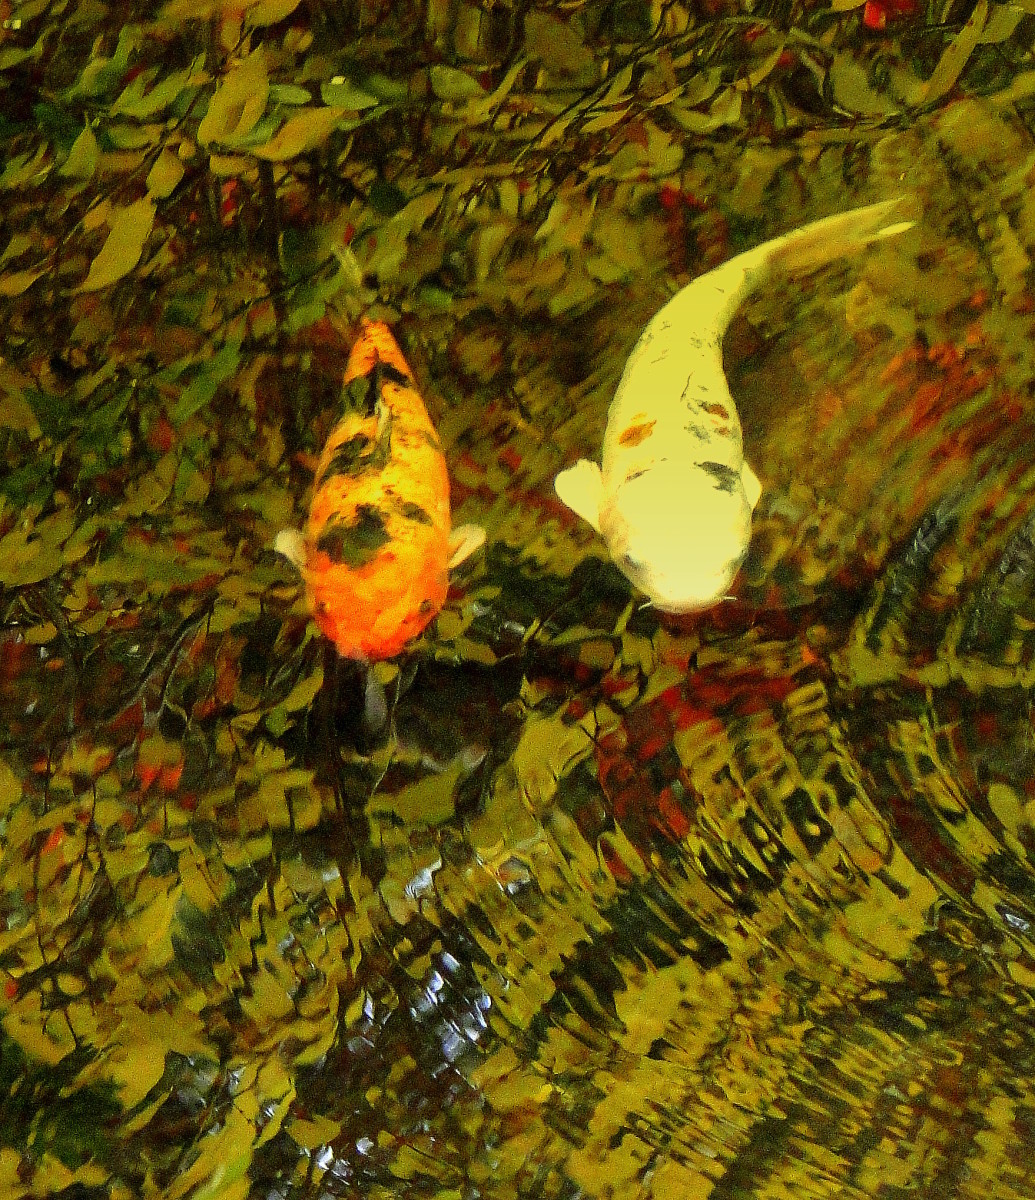 The ripples from swimming koi distort a pond's muddy bottom.